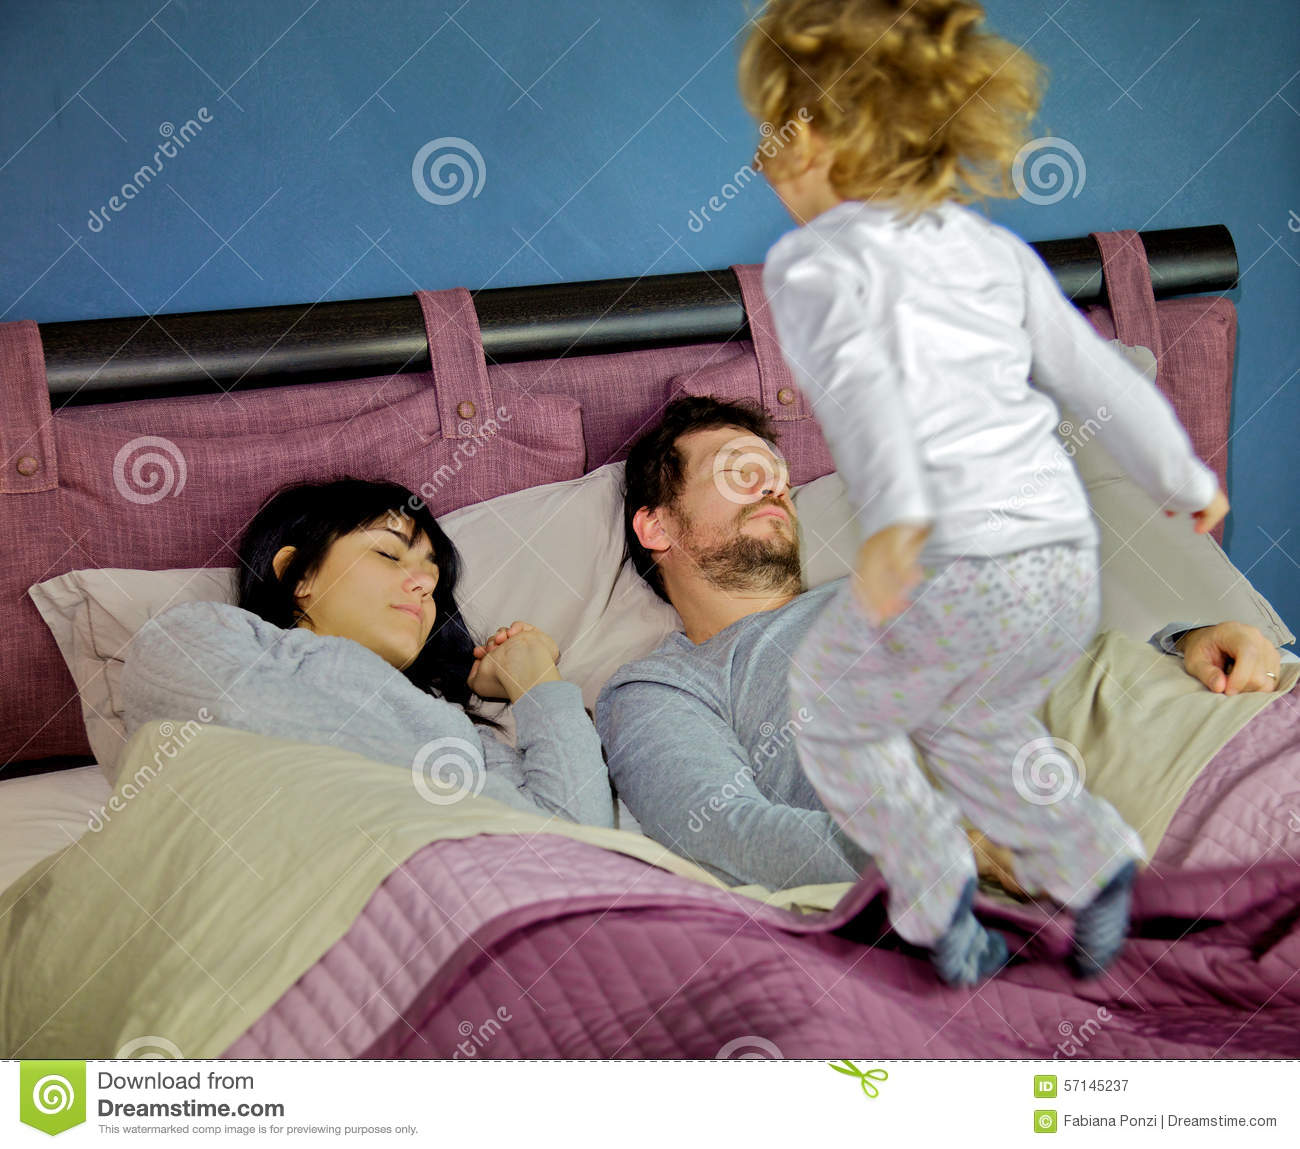 Little girl jumping on bed while parents are sleeping